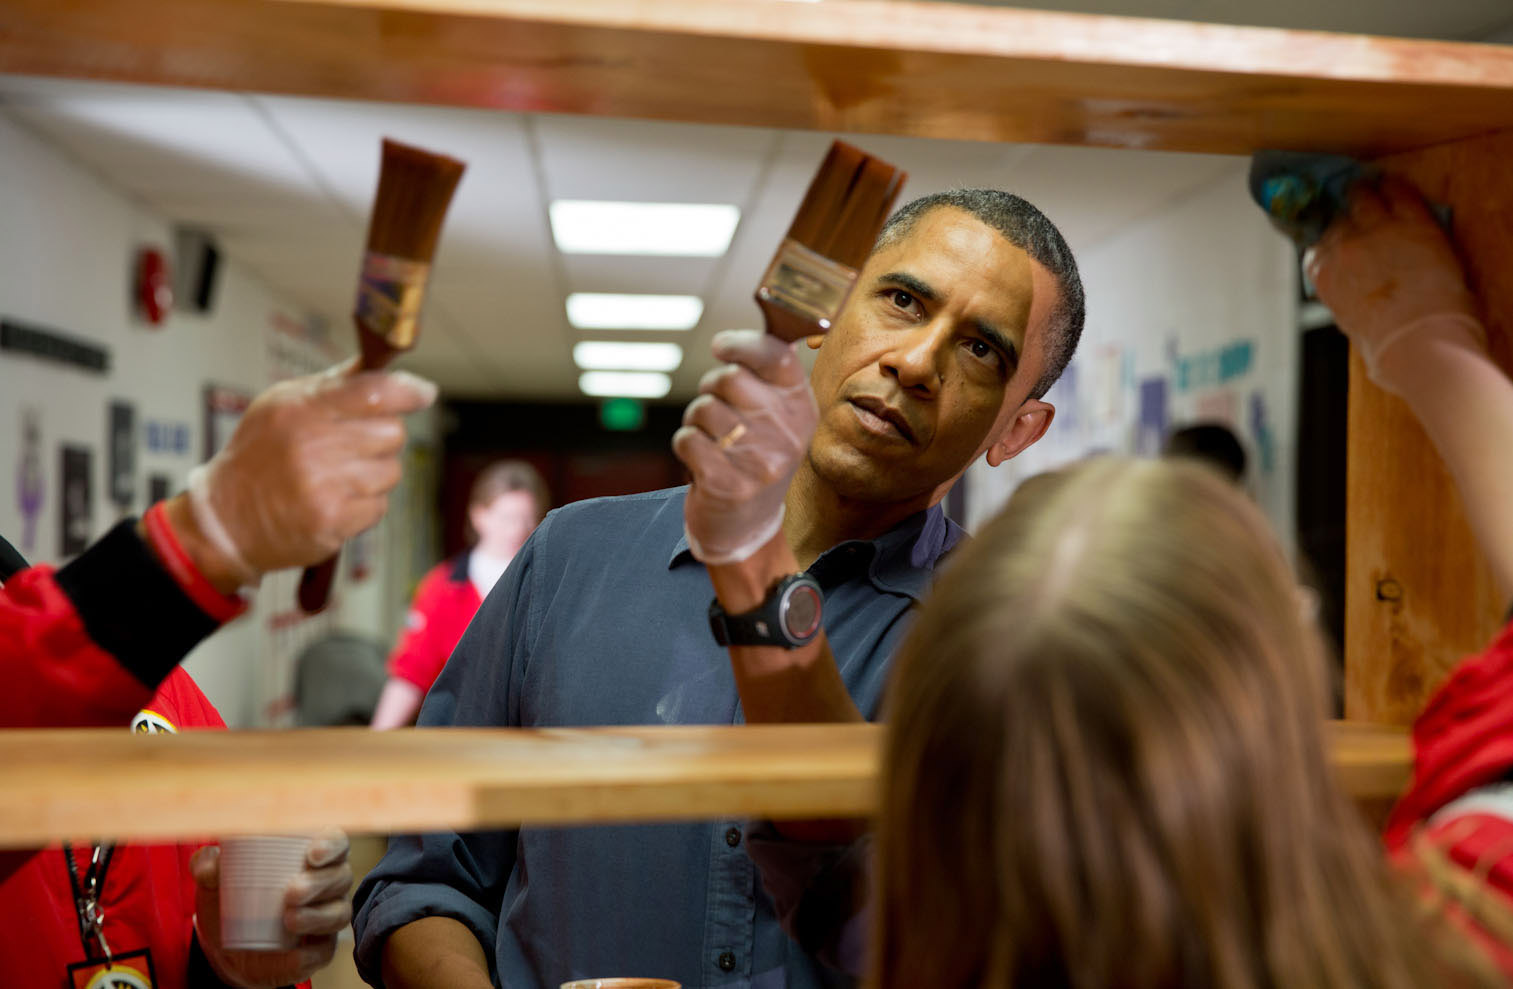 President Barack Obama stains shelves during a National Day of Service